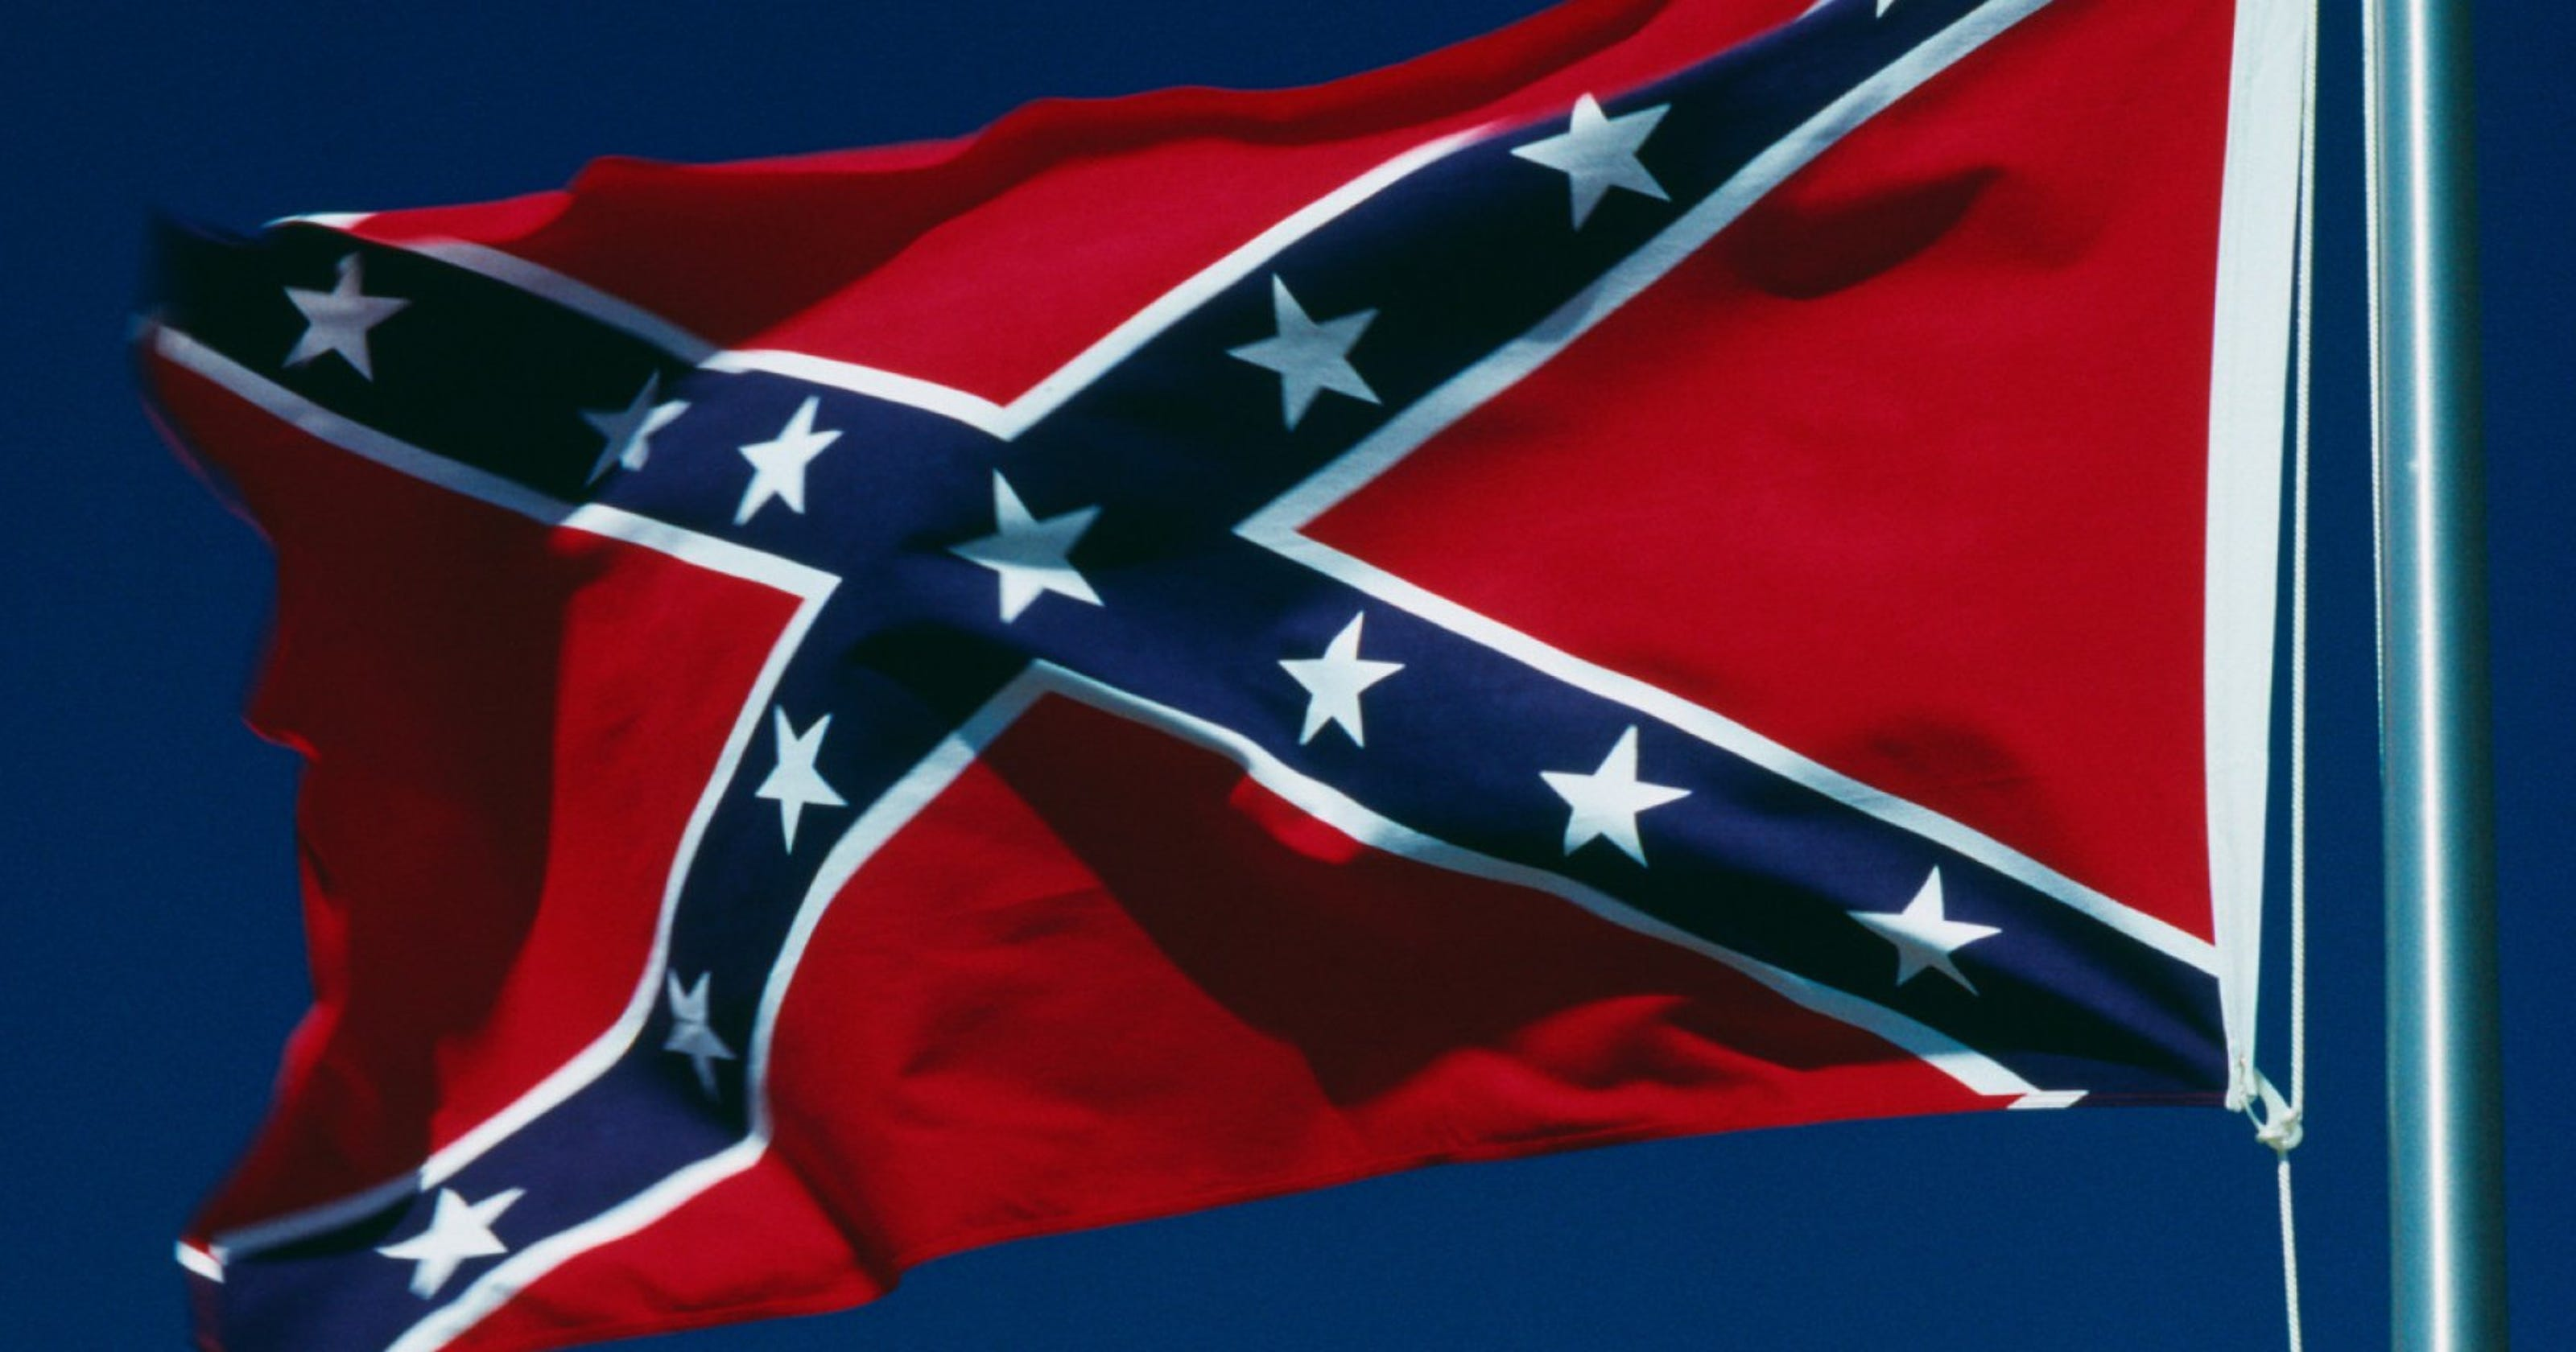 Some state offices closed for Confederate Memorial Day Thursday